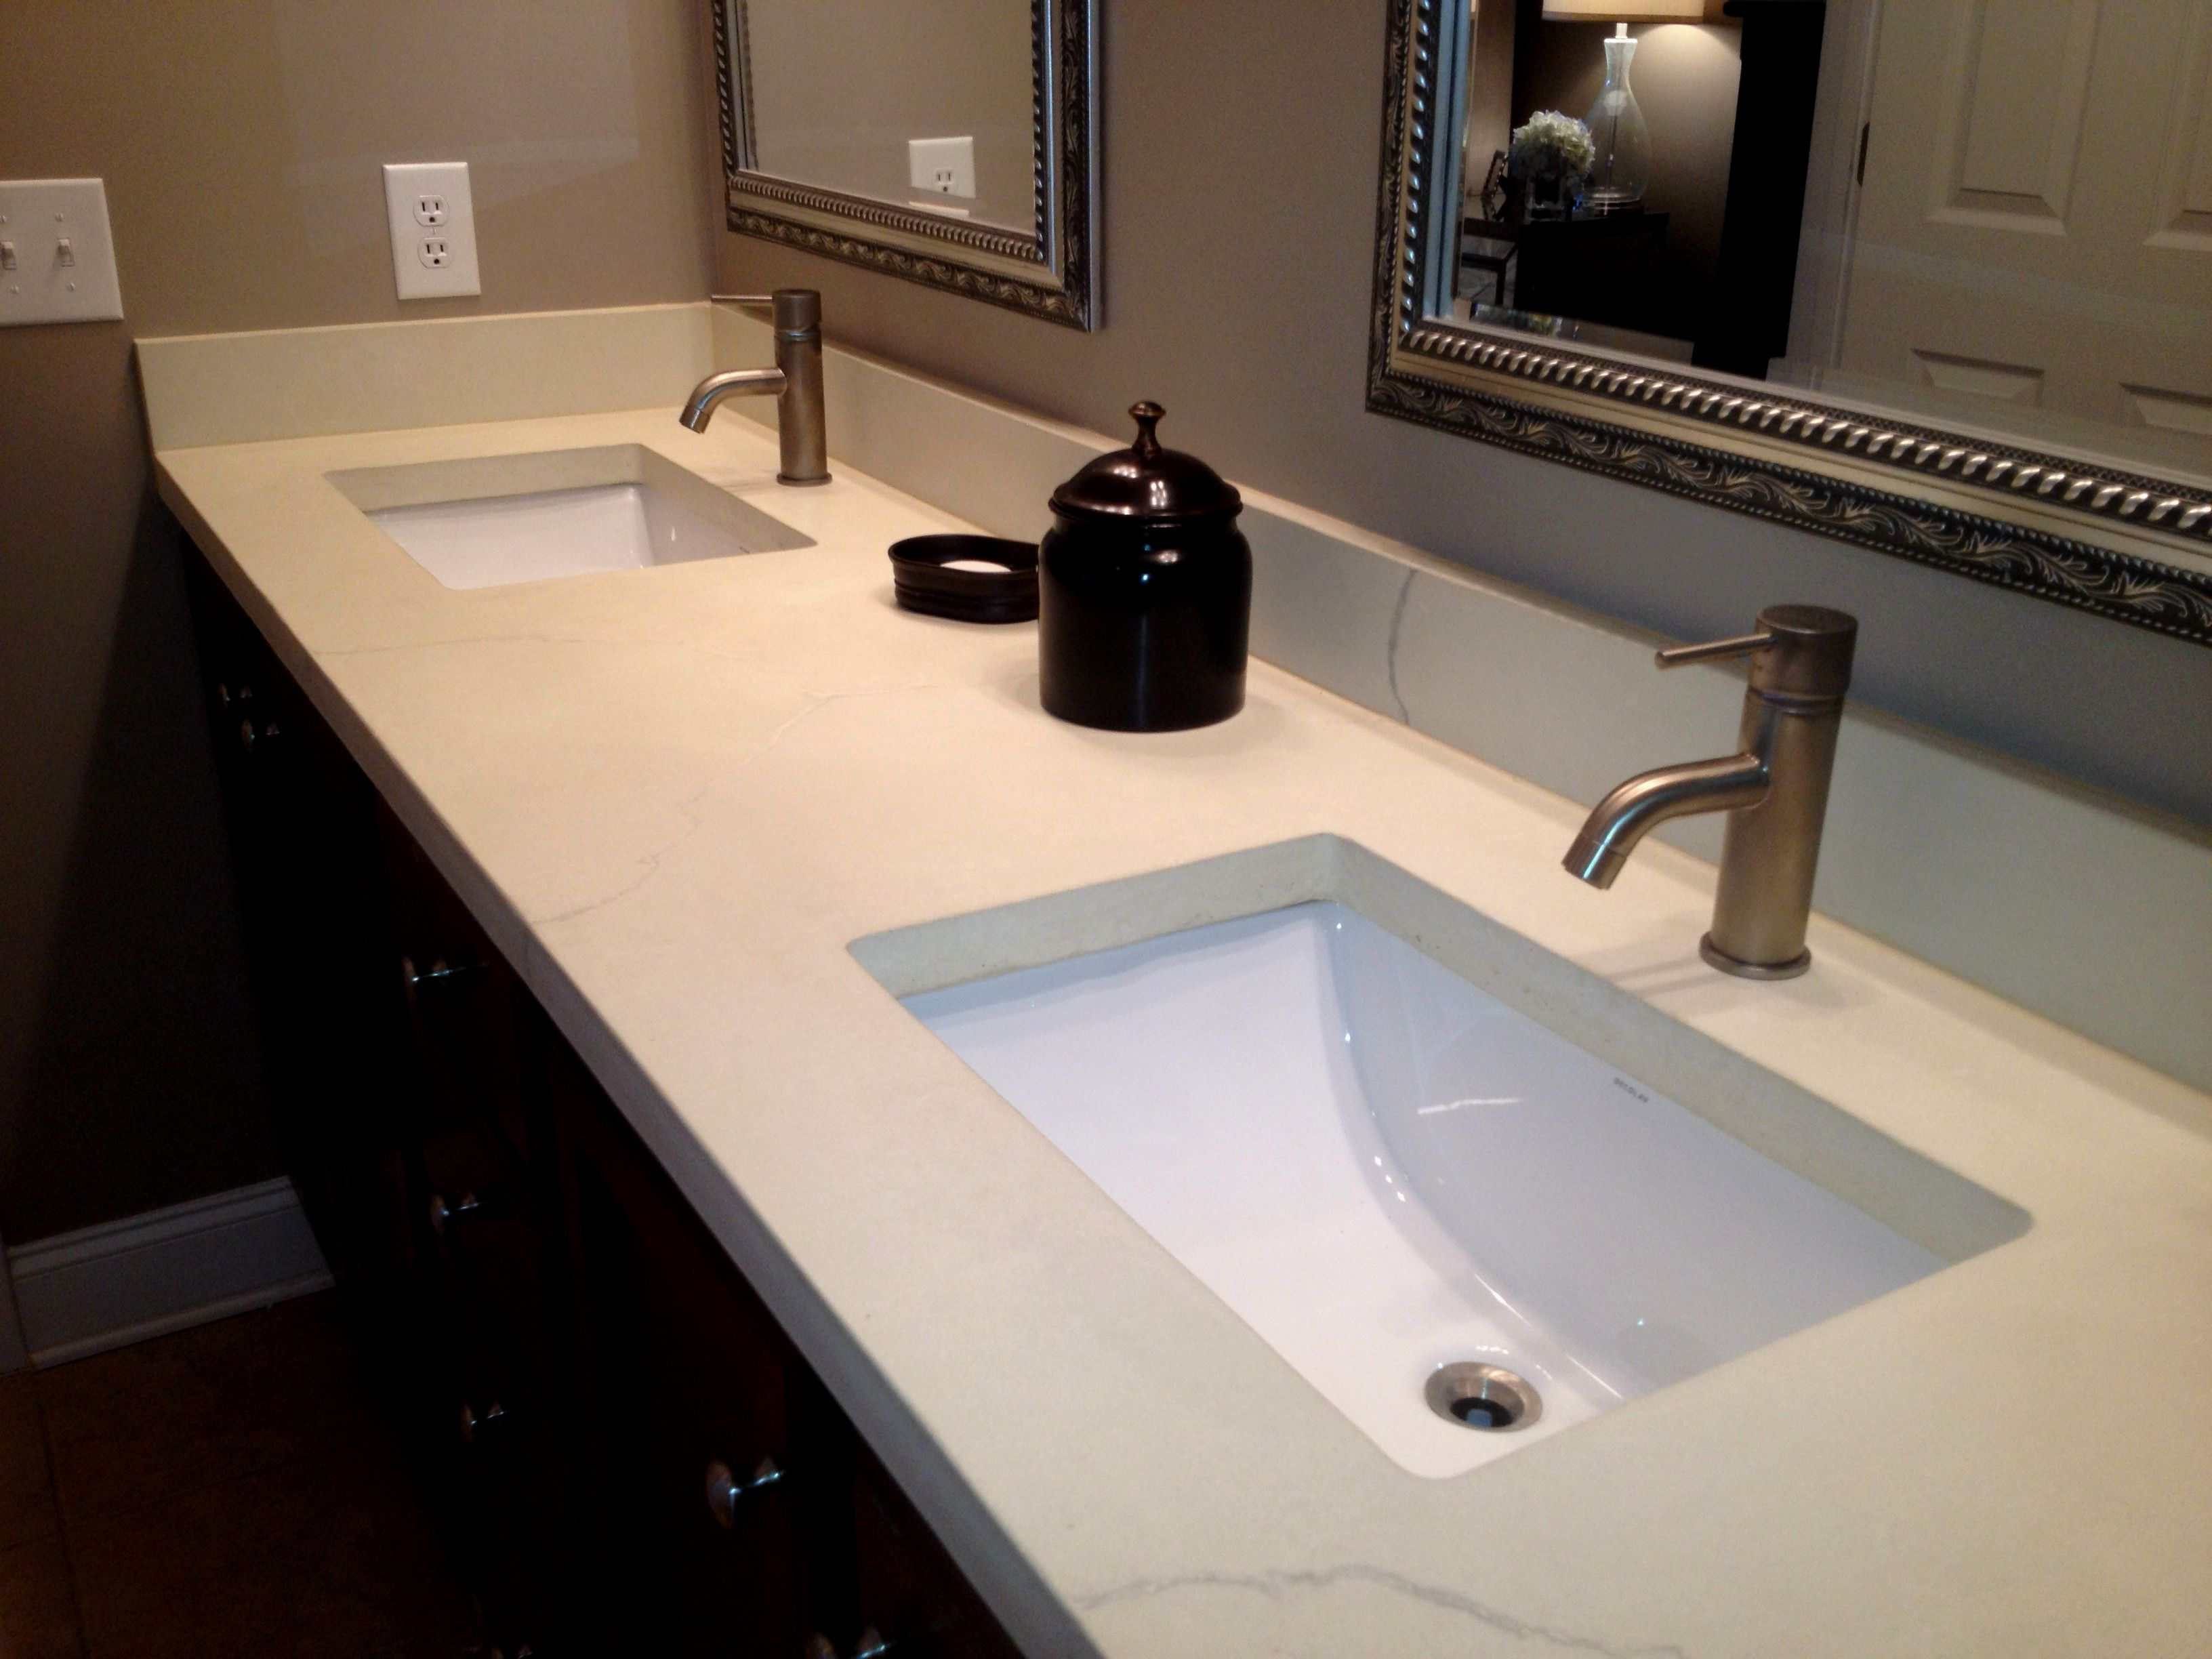 inspirational bathroom sinks for sale photo-Top Bathroom Sinks for Sale Portrait